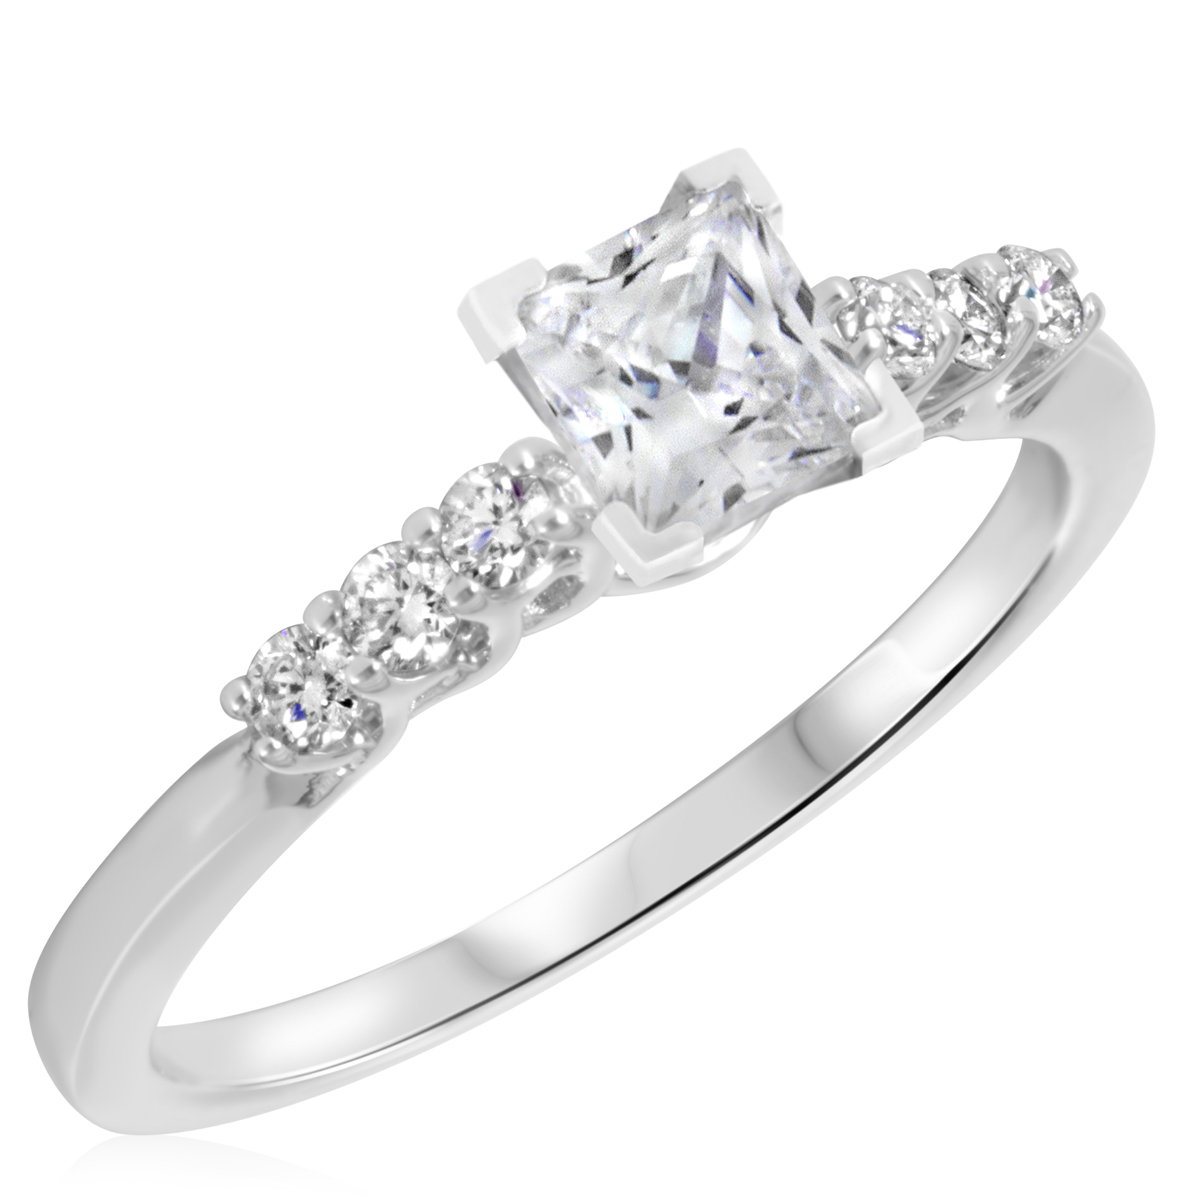 7/8 CT. T.W. Diamond Ladies Engagement Ring 10K White Gold- Size 8